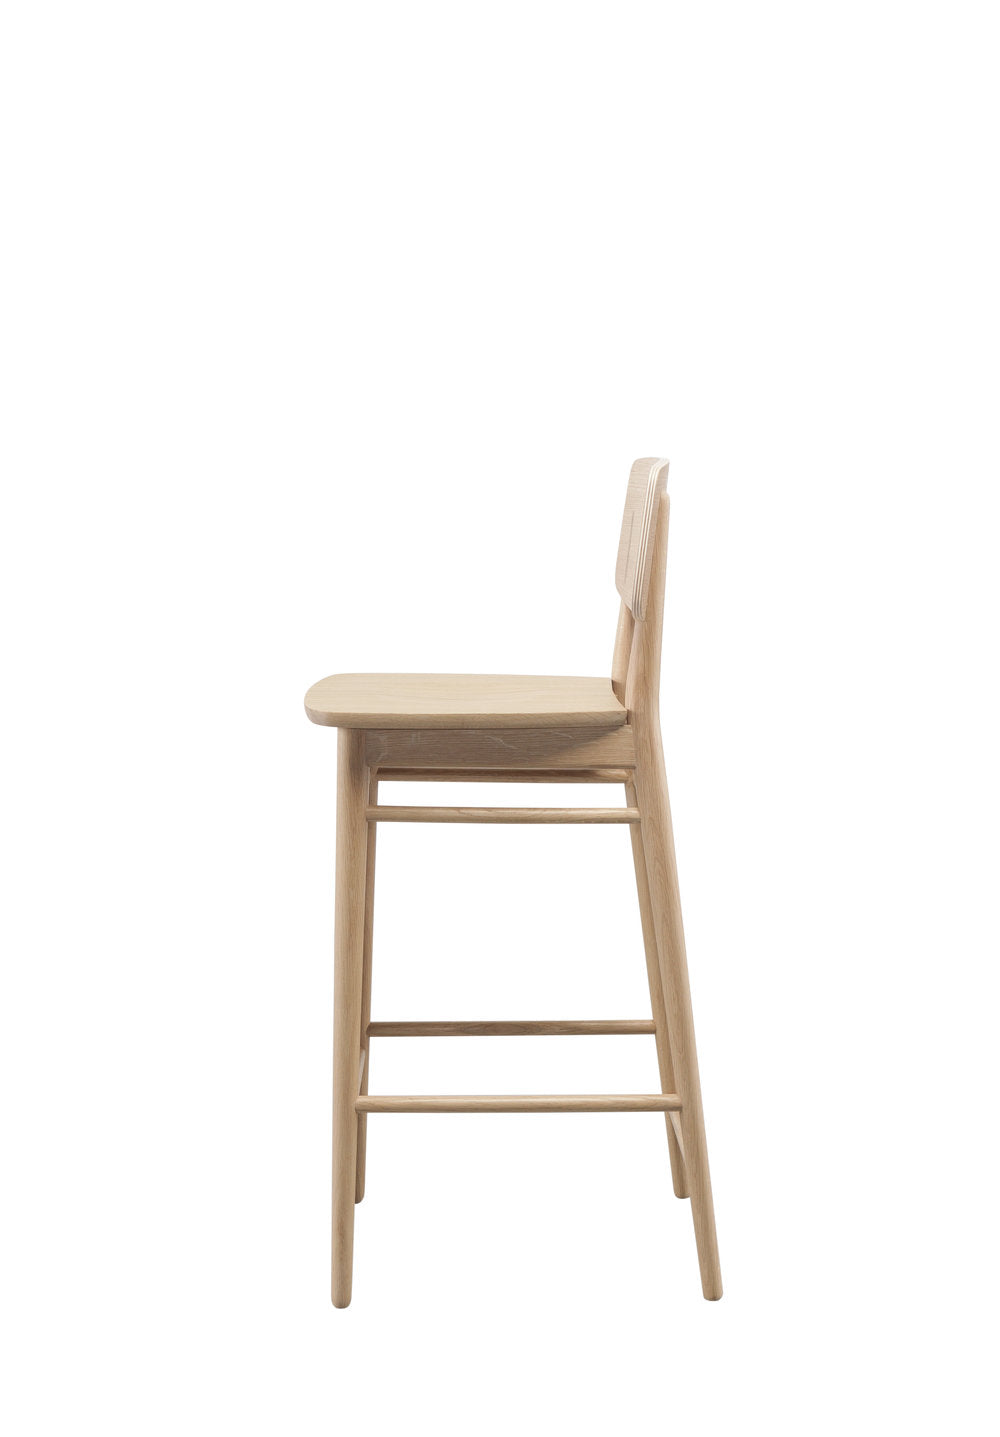 COUNTRY bar stool